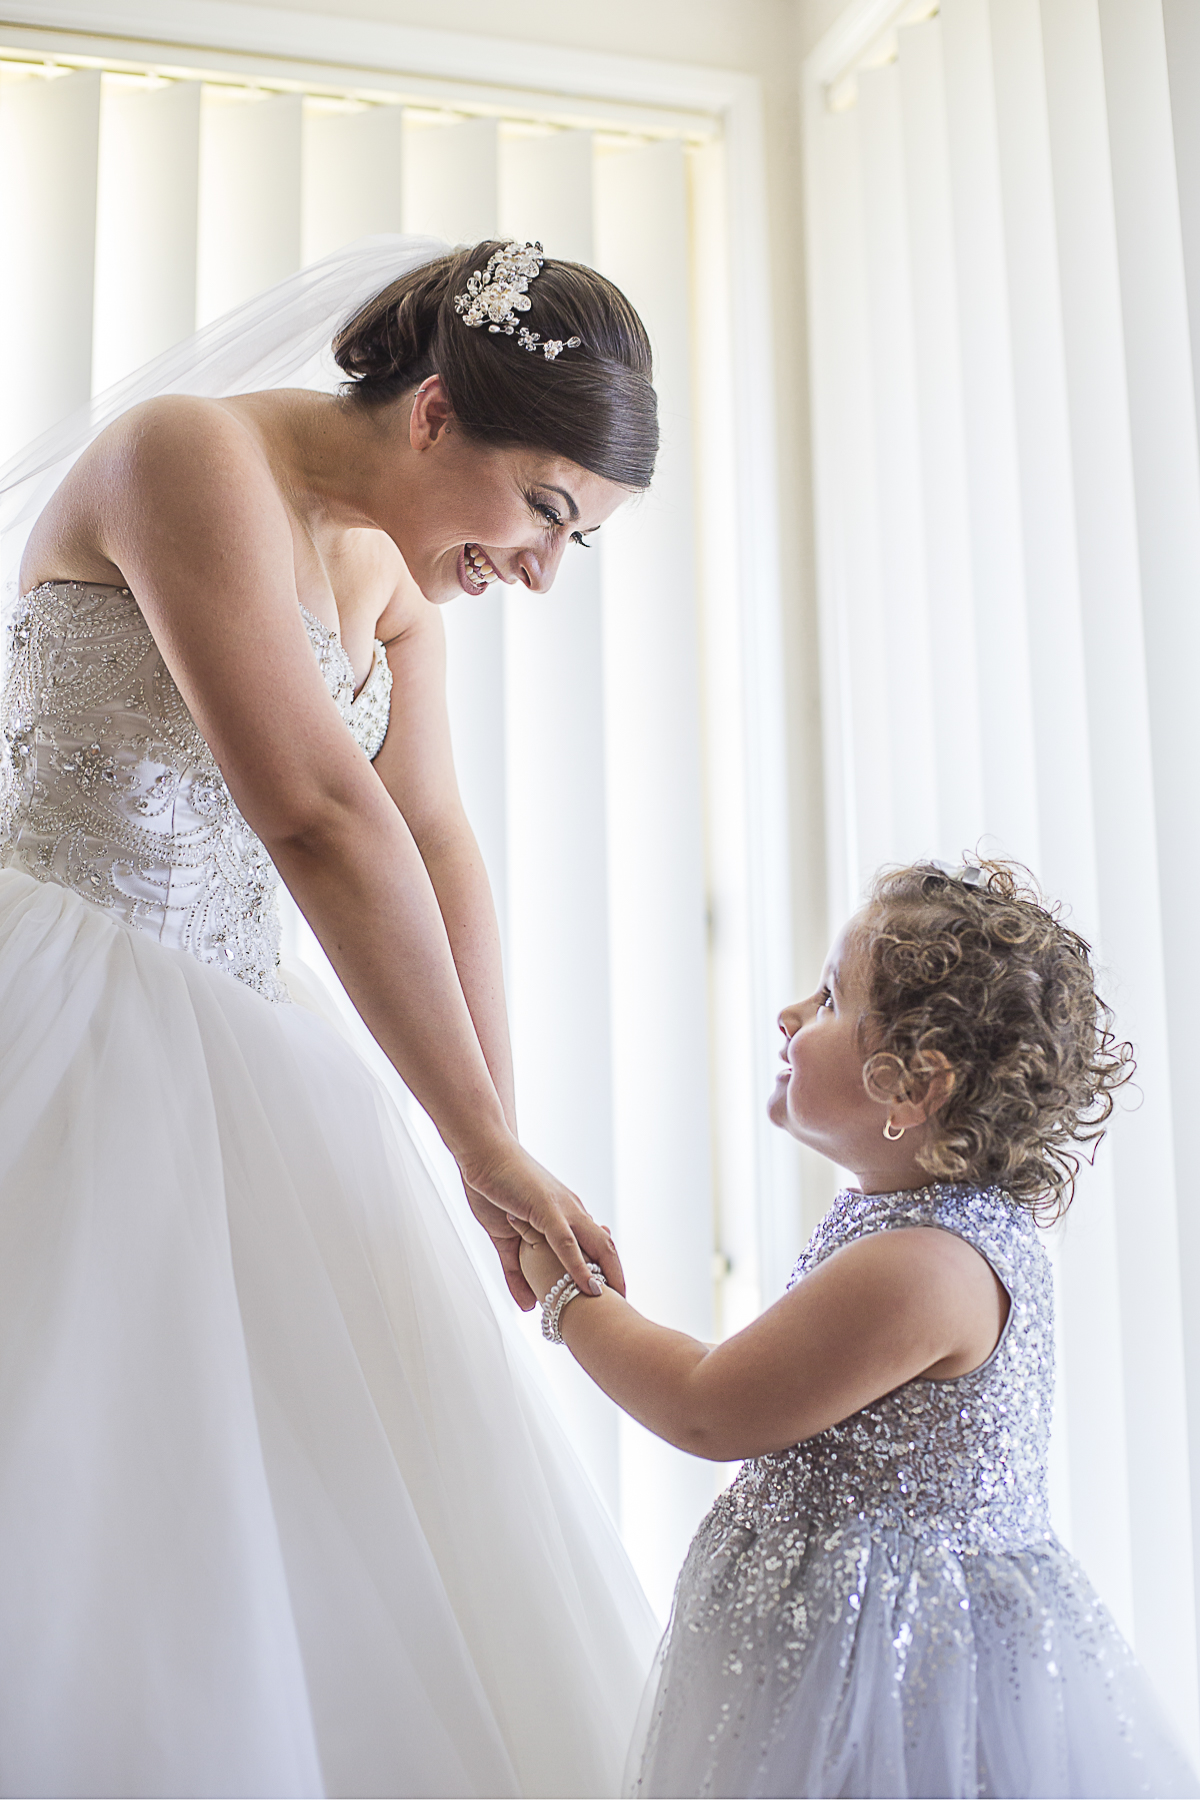 Bride and niece wedding photo | Fantasie Photography